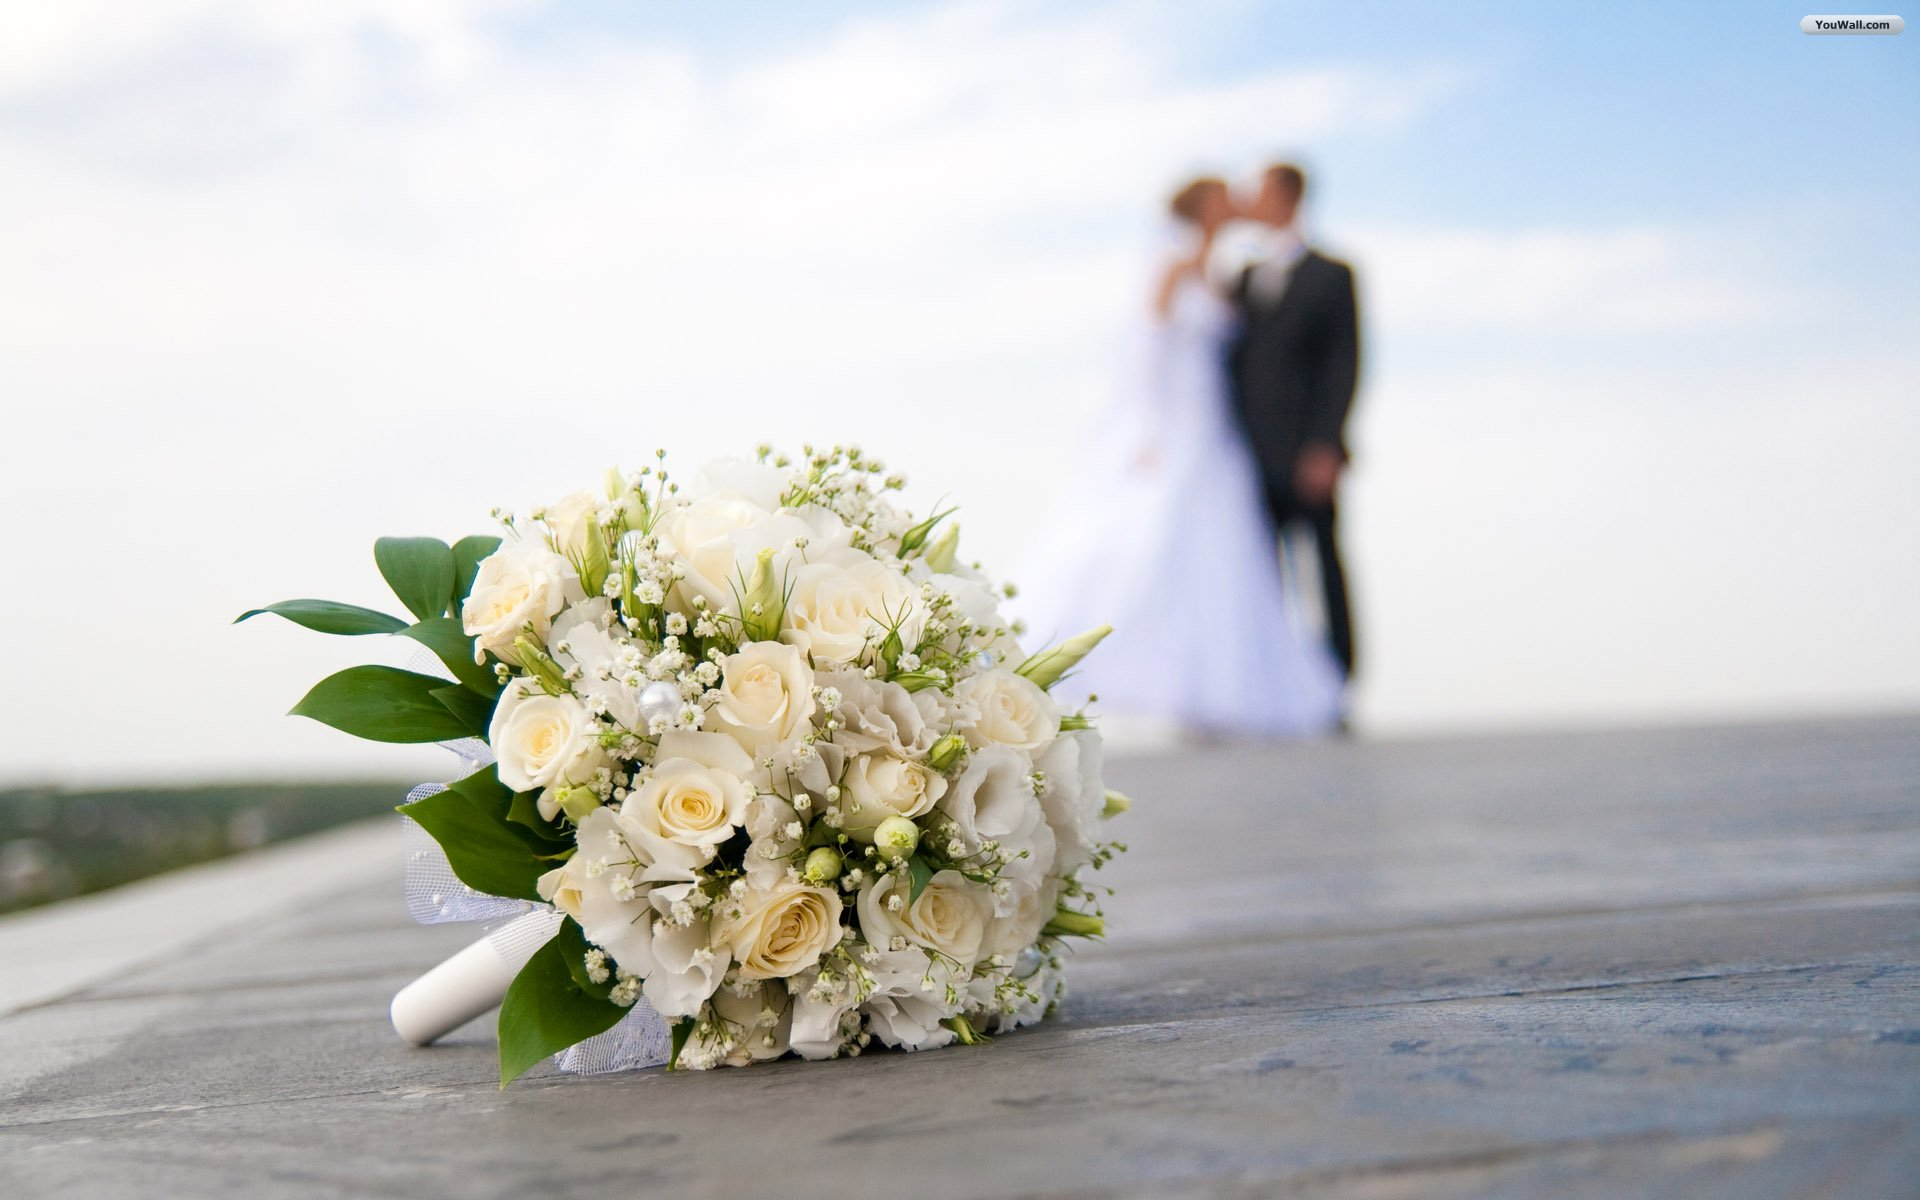 If you are looking for a destination wedding in orlando, florida then